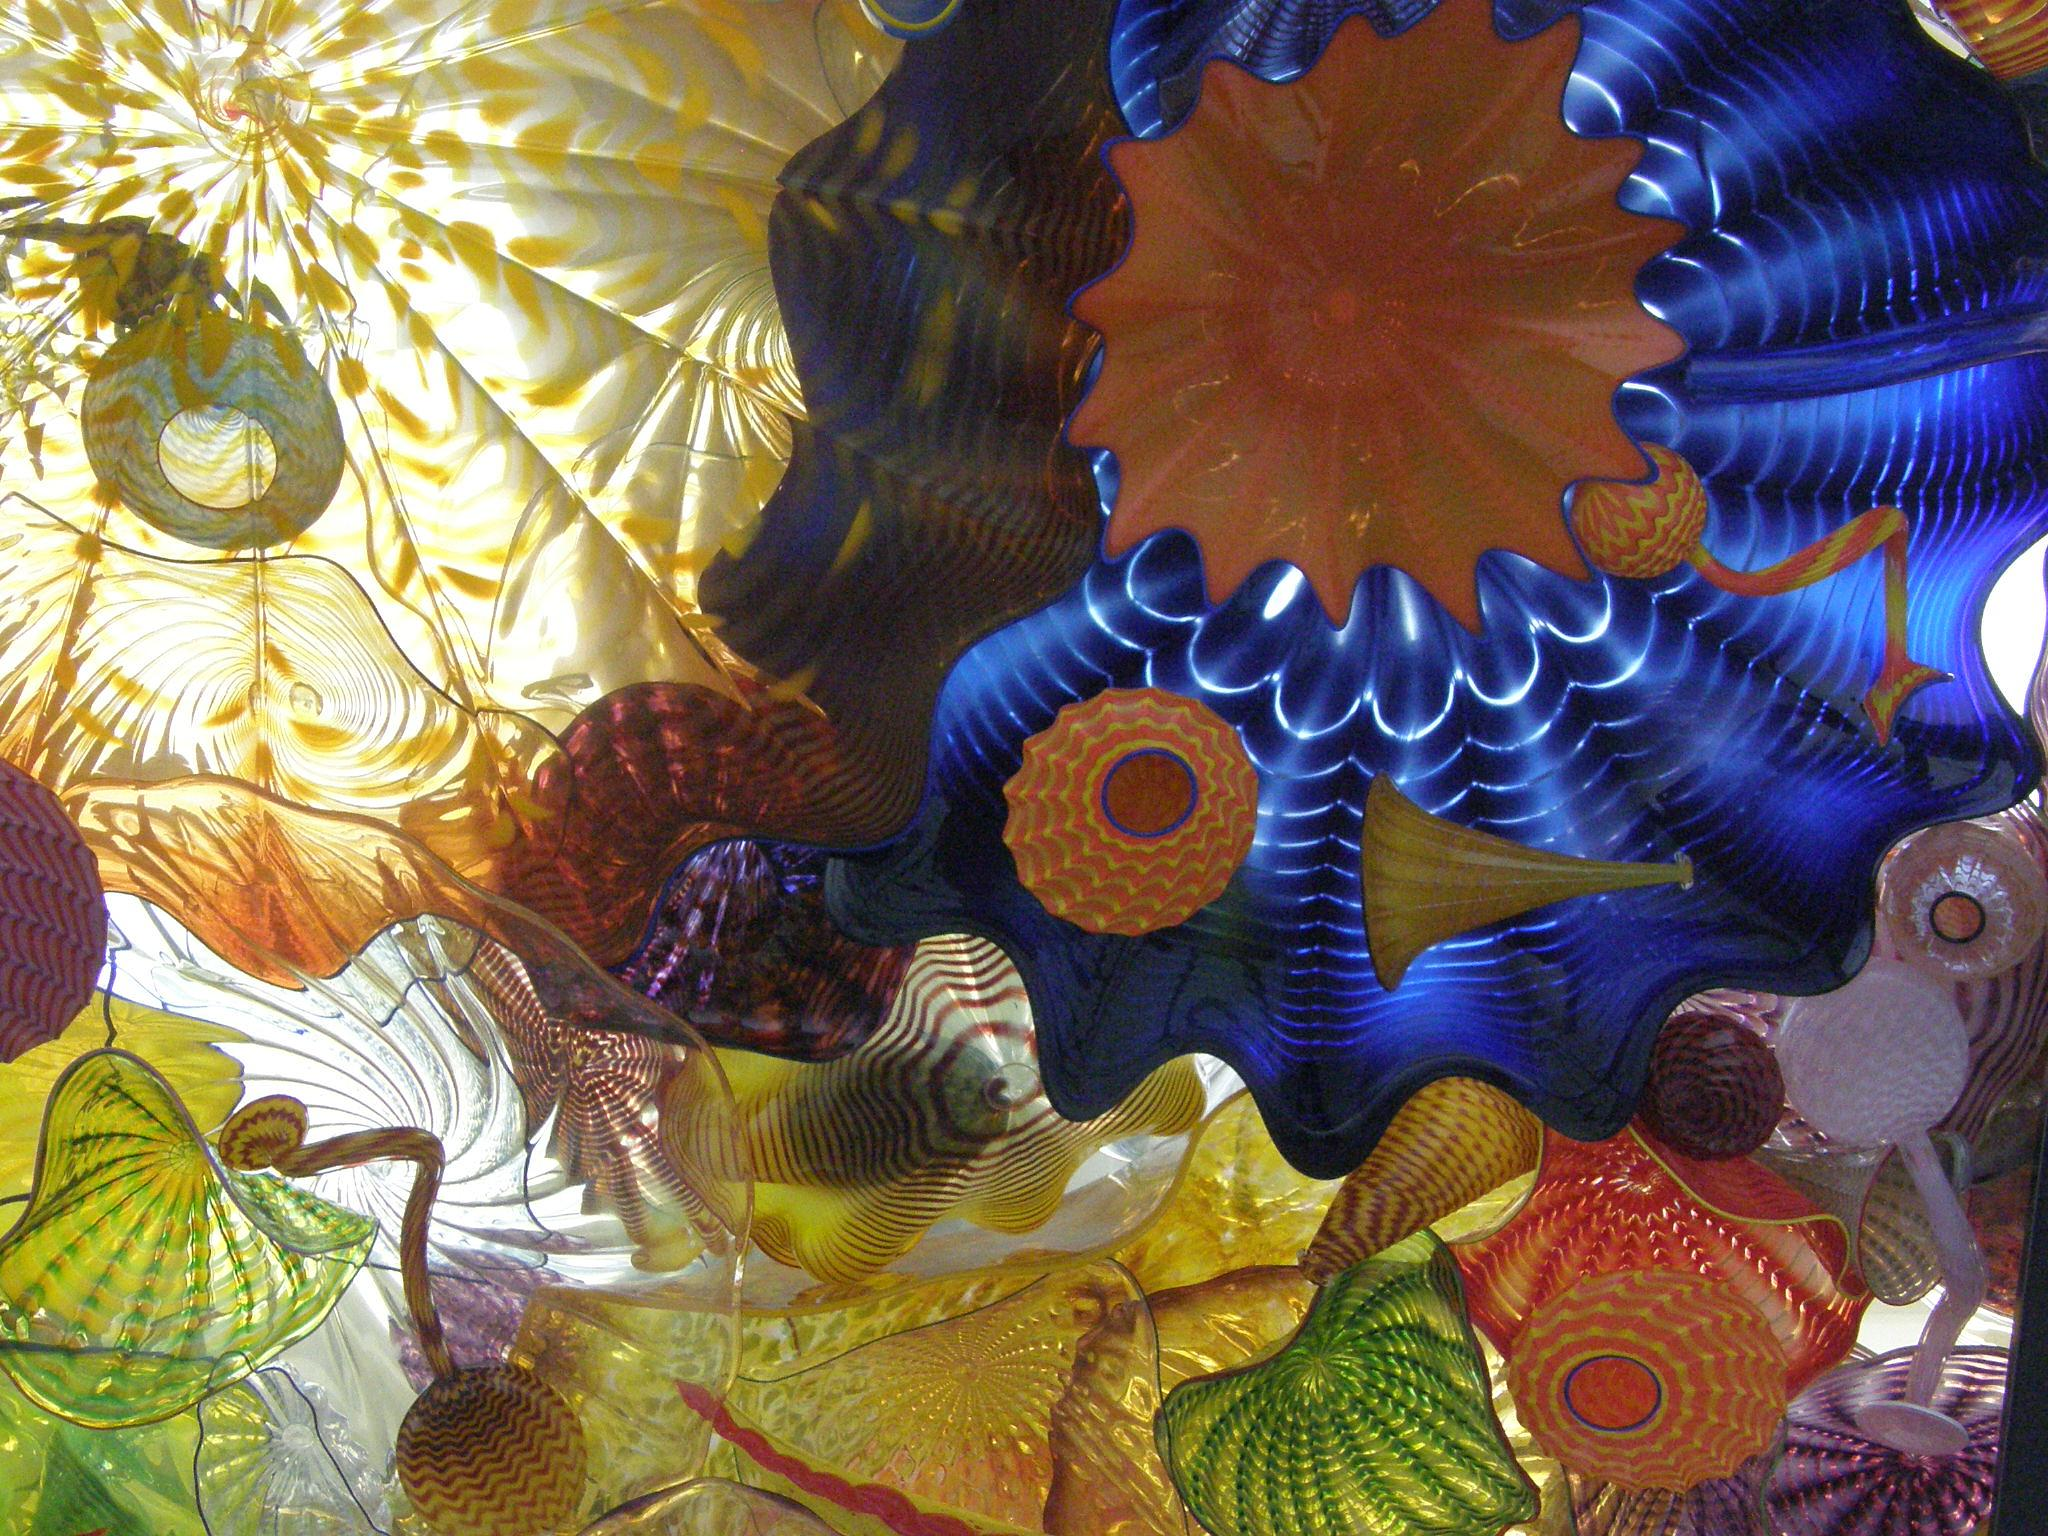 Chihuly Glass in the Overpass -- Ceiling View #6 by ralph.s.carlson